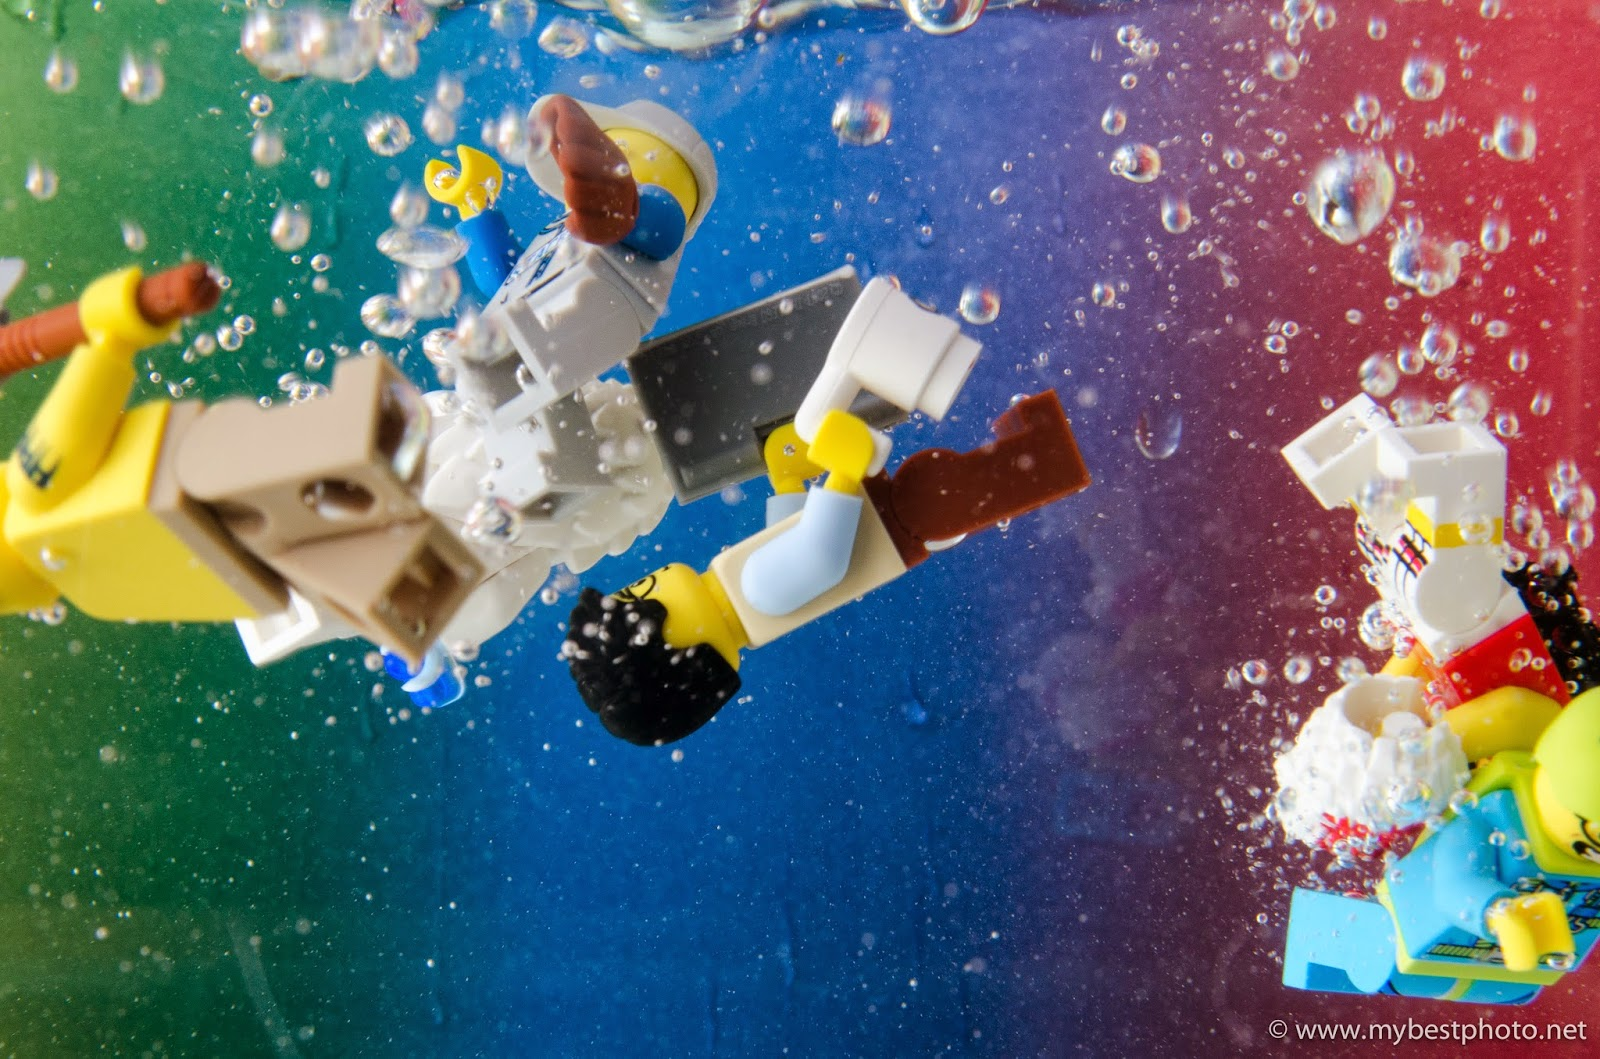 Lego Minifigure Pool Party